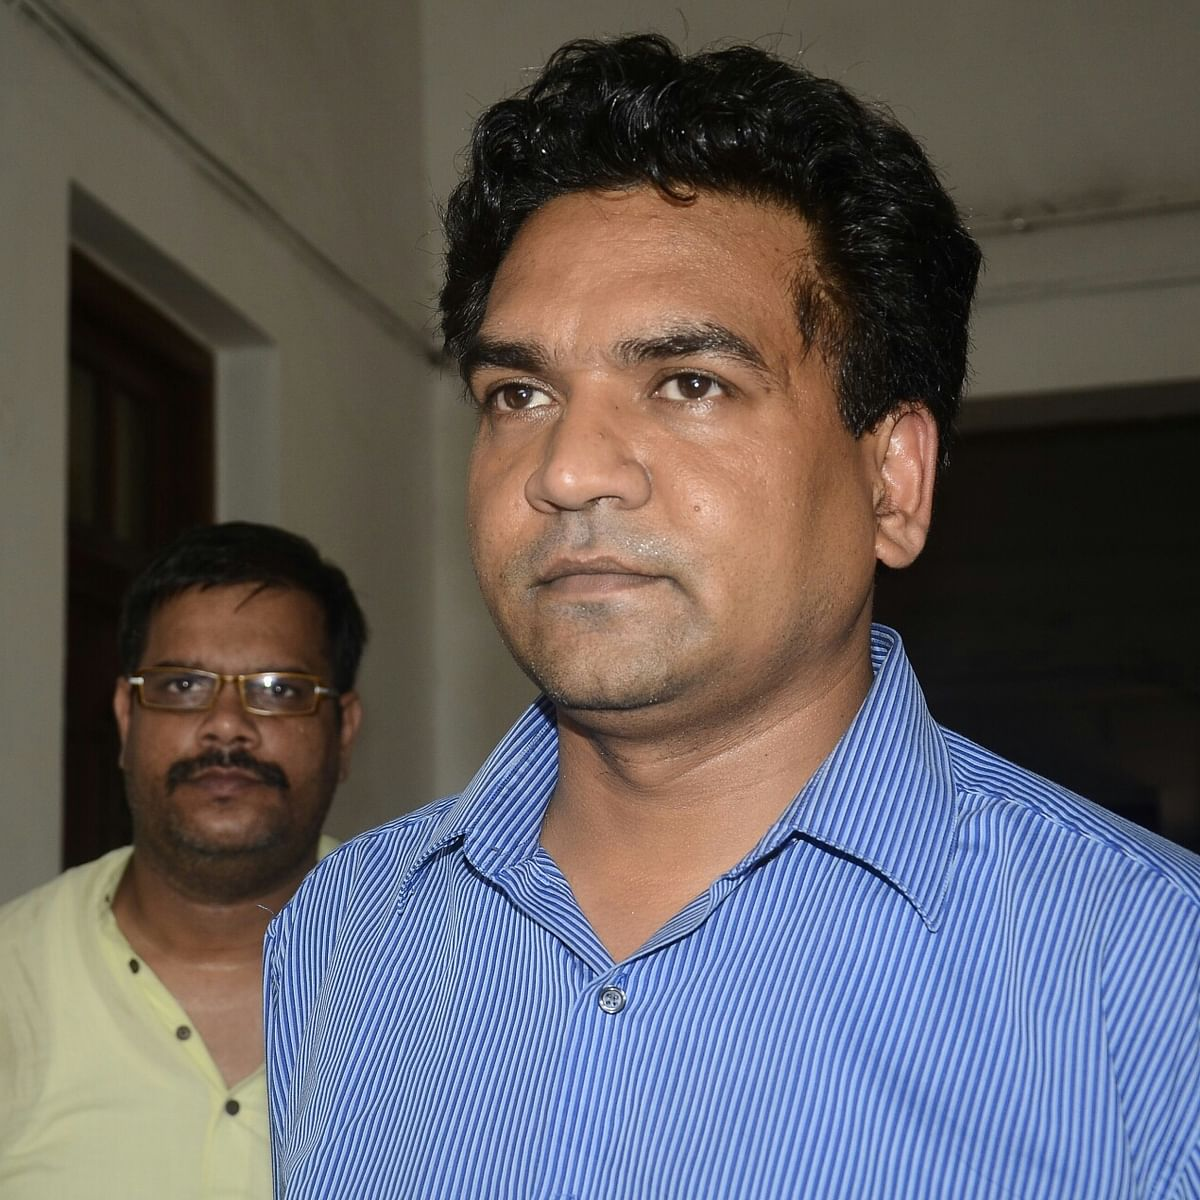 Kapil Mishra (Photo Courtesy: IANS)